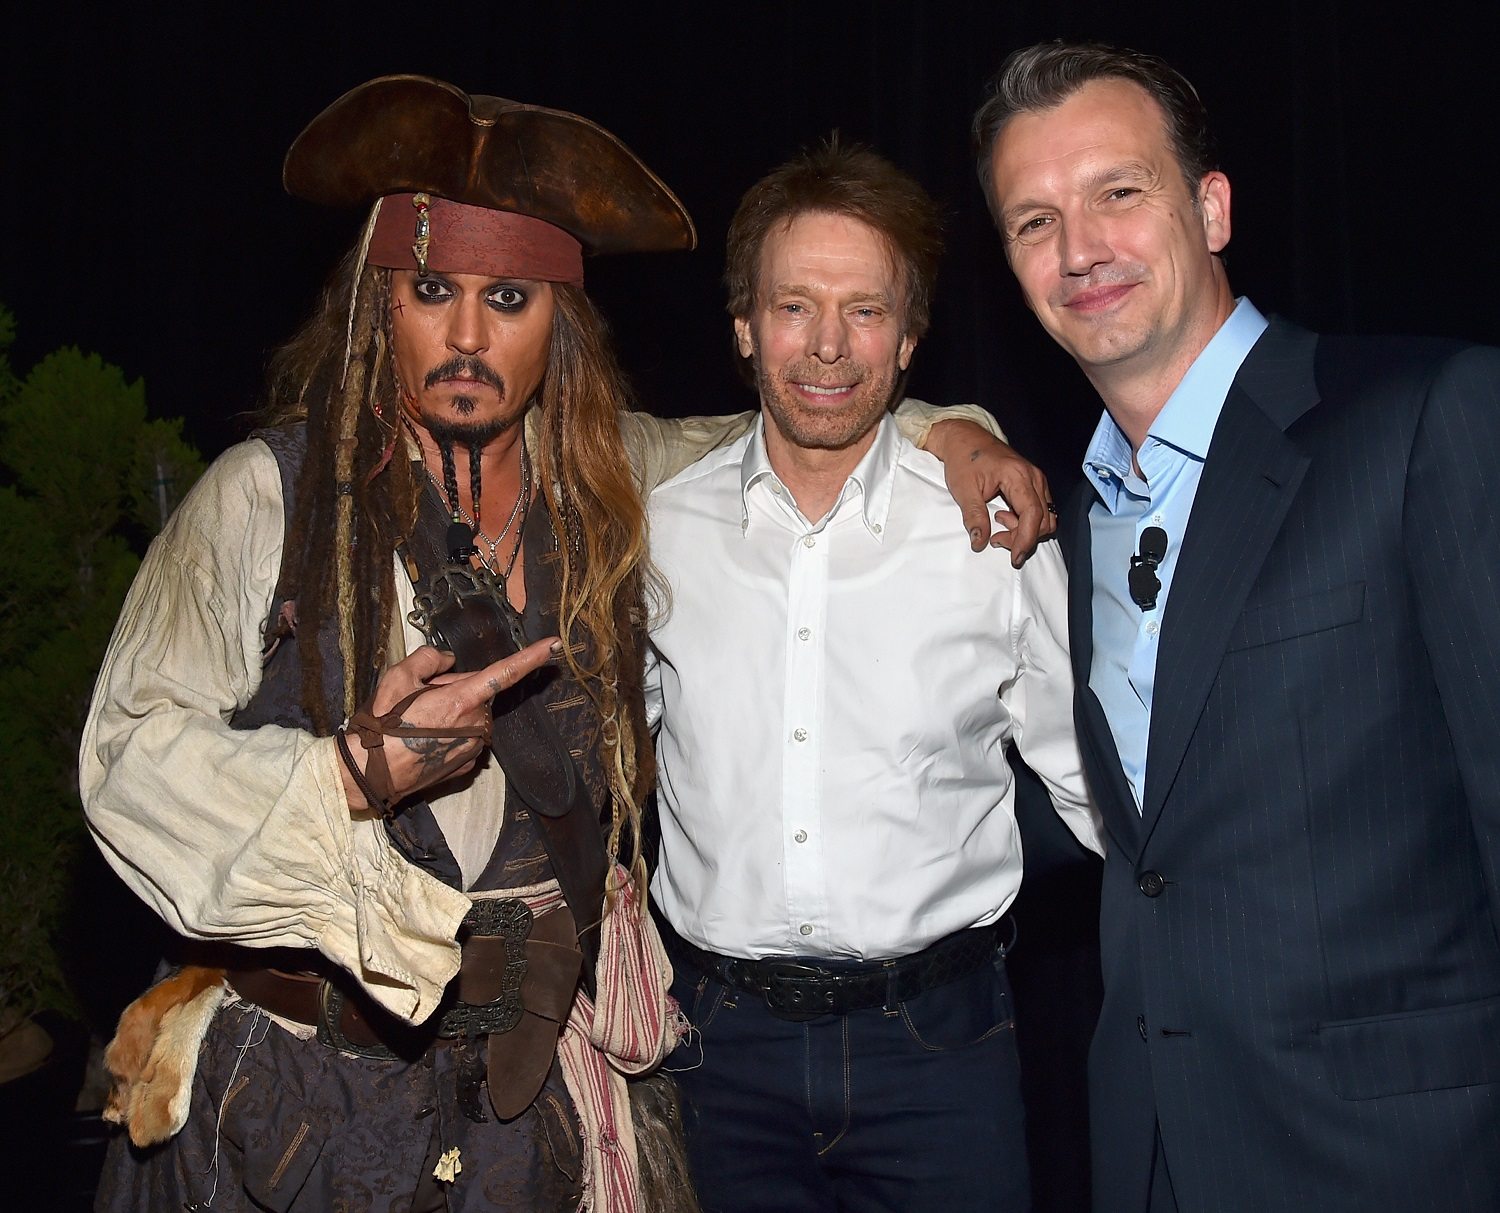 Join Me for the Disney PIRATES OF THE CARIBBEAN: DEAD MEN TELL NO TALES Red Carpet Premiere! #PiratesLifeEvent